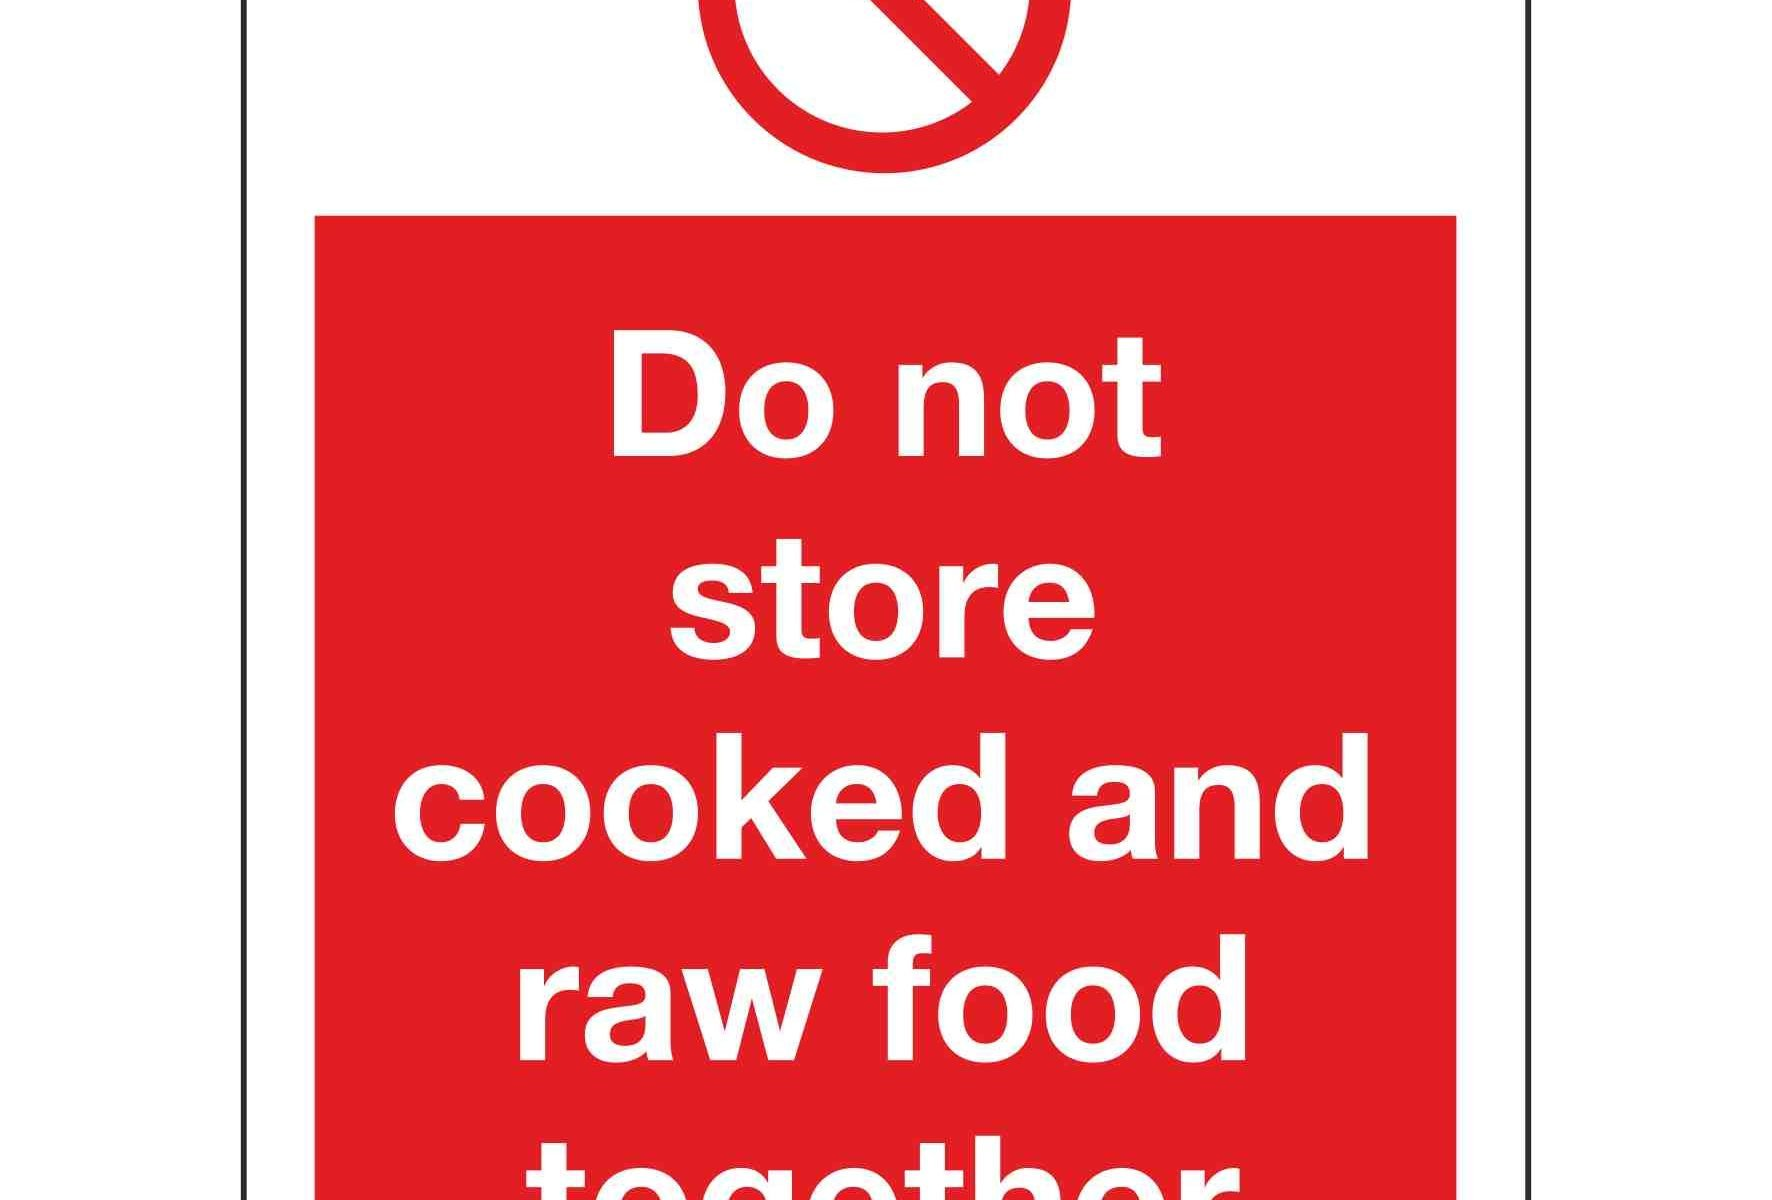 Do not store cooked and raw food together